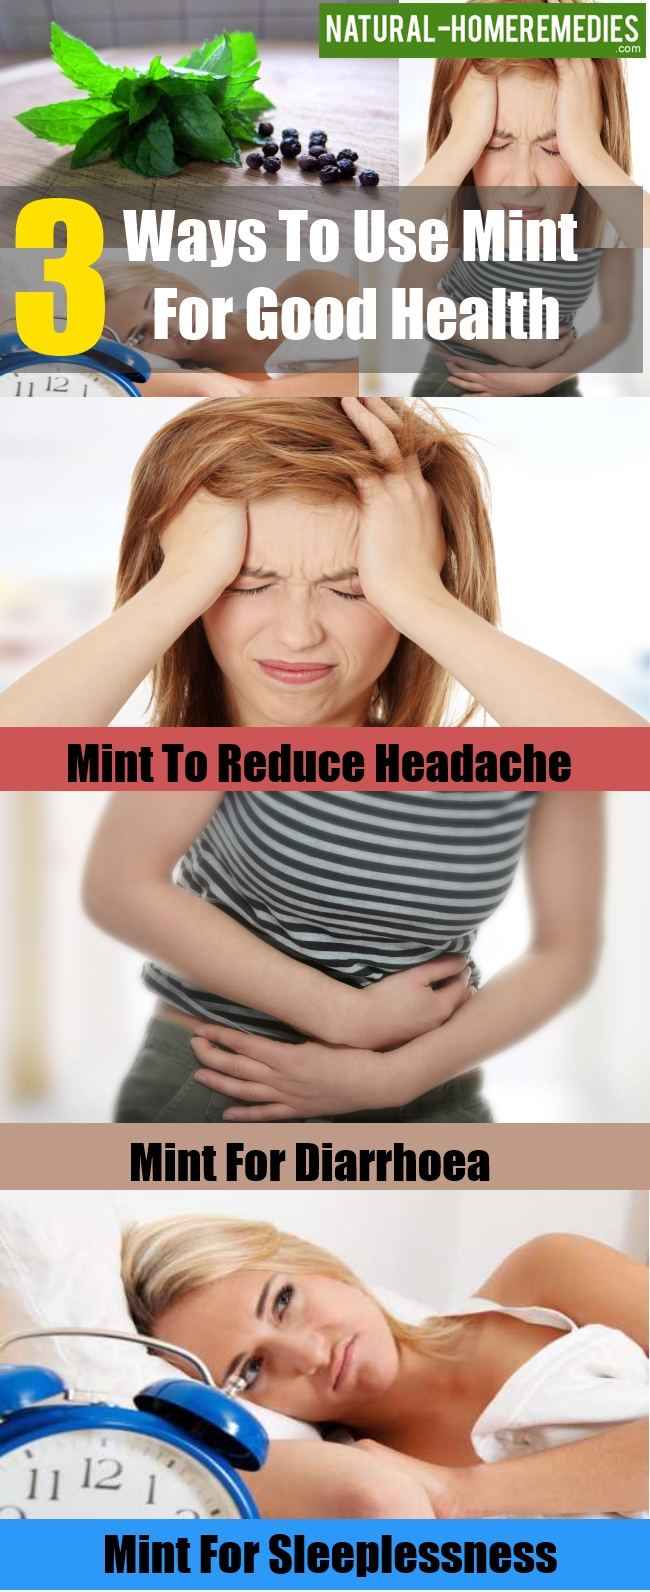 Ways To Use Mint For Good Health